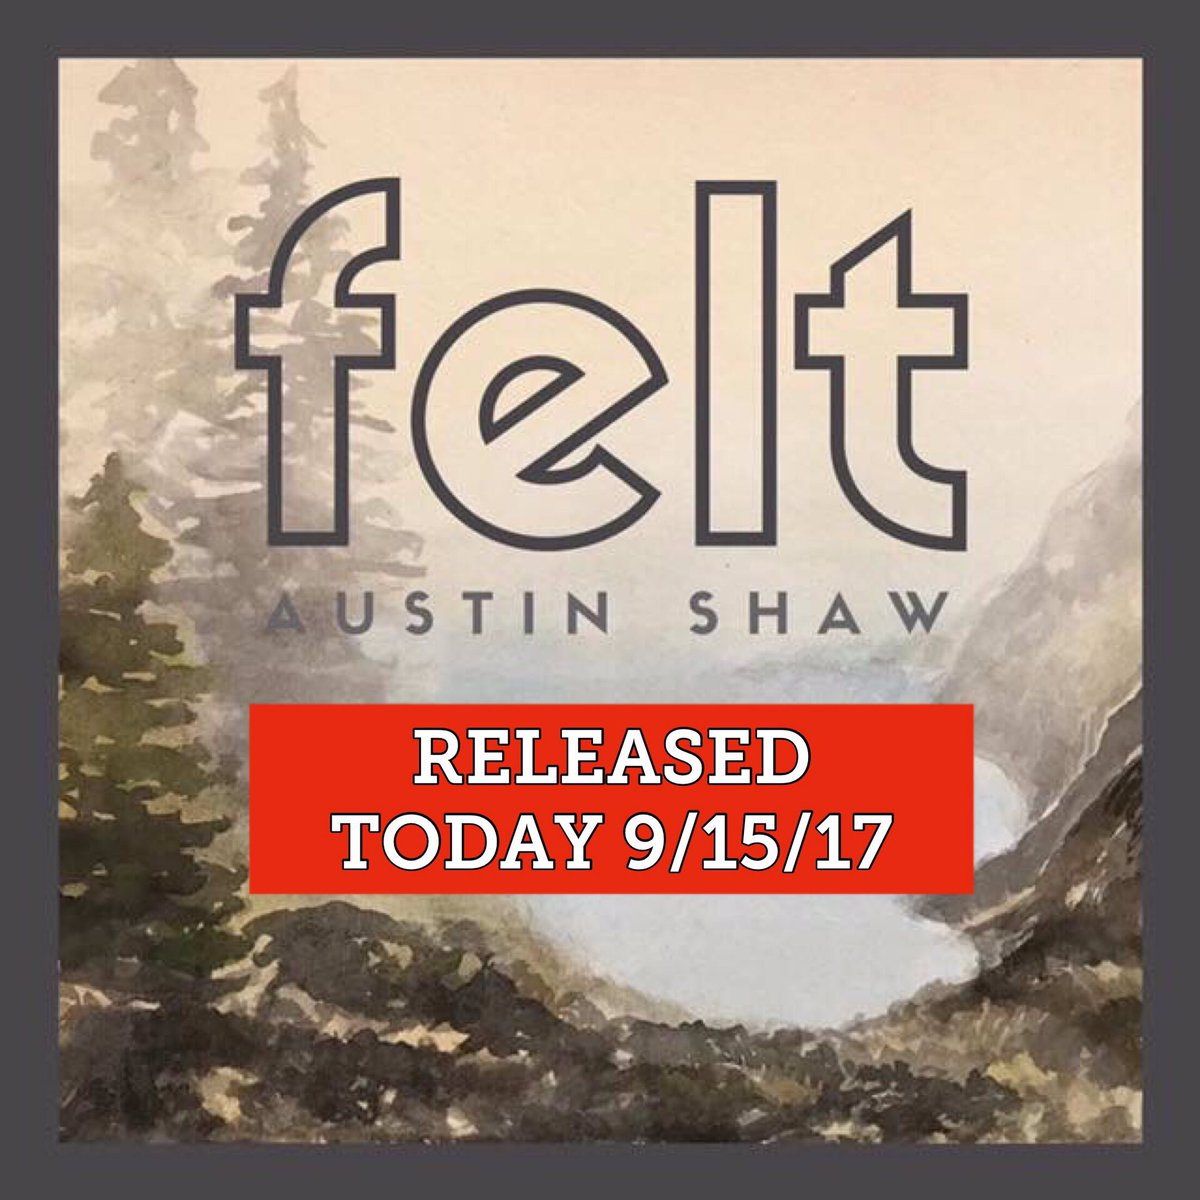 TODAY! Our #new #album #FELT released today!  TOMORROW BUY YOUR TICKETS HERE for our record release #party!  https://www. kuumbwajazz.org/calendar/austi n-shaws-album-release-concert &nbsp; … <br>http://pic.twitter.com/yRo0W7SnxV